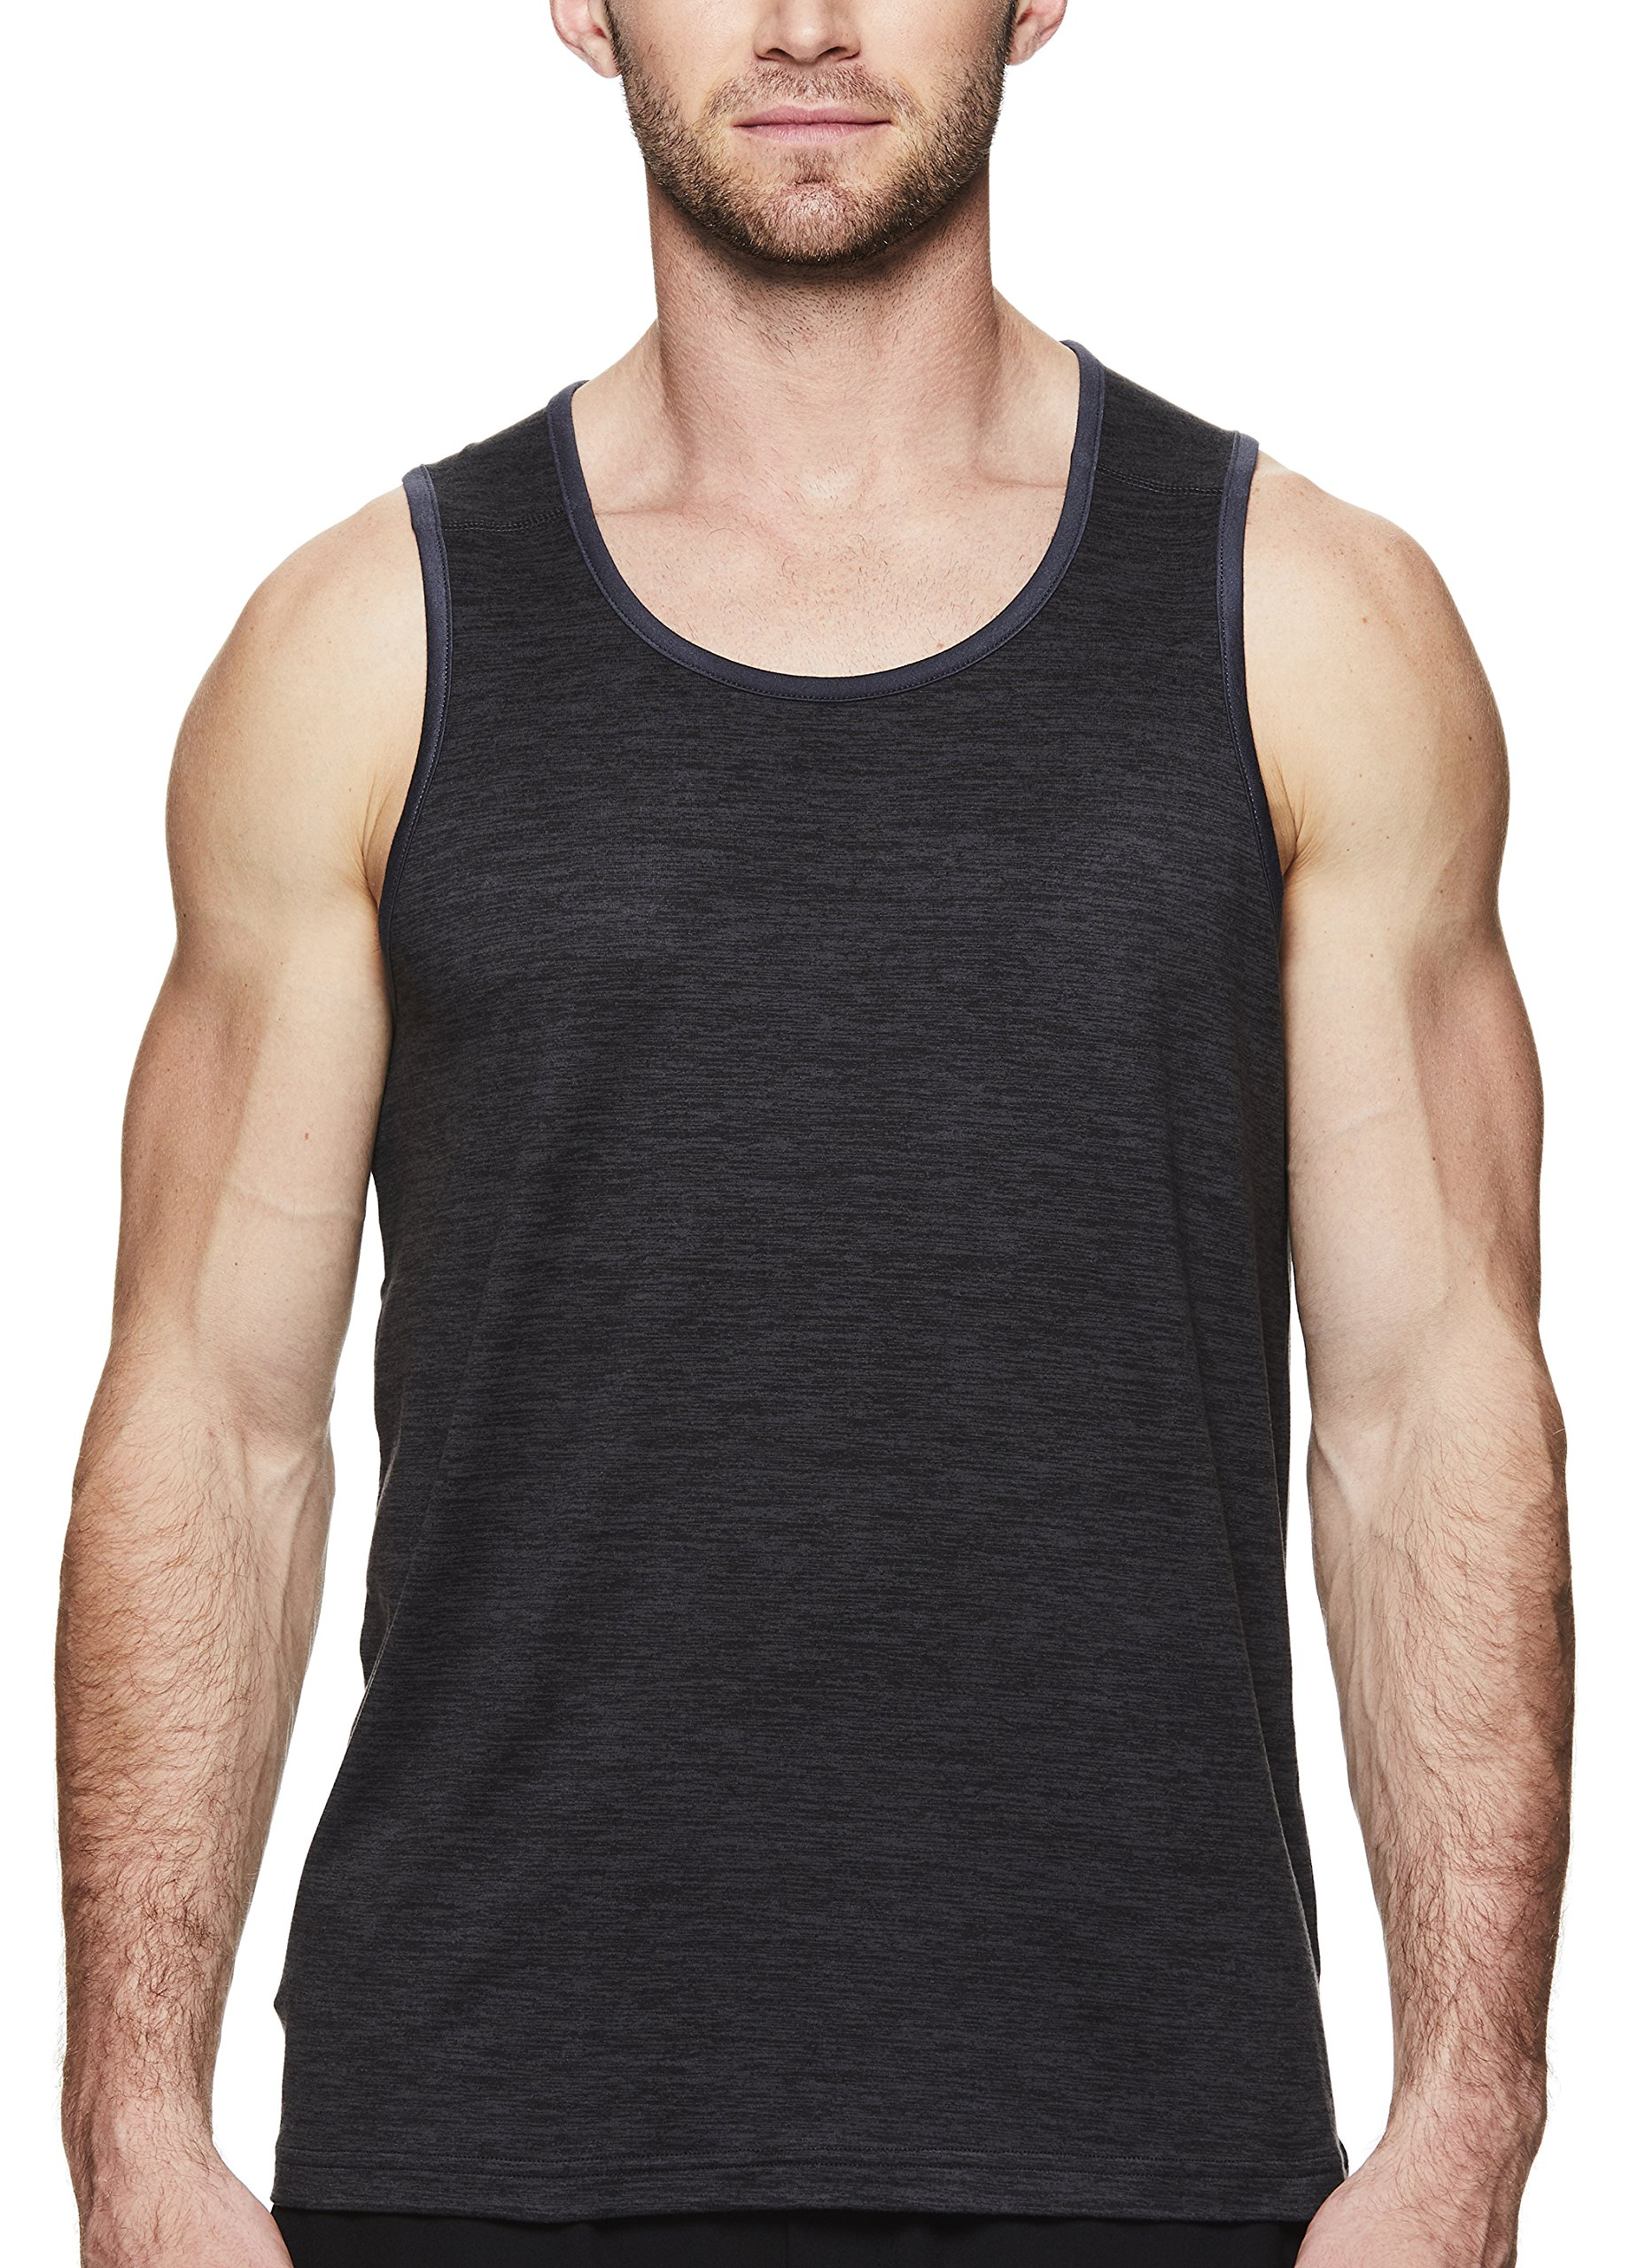 Gaiam Men's Everyday Basic Muscle Tank Top - Sleeveless Yoga & Workout Shirt - Black Heather Everyday, Medium